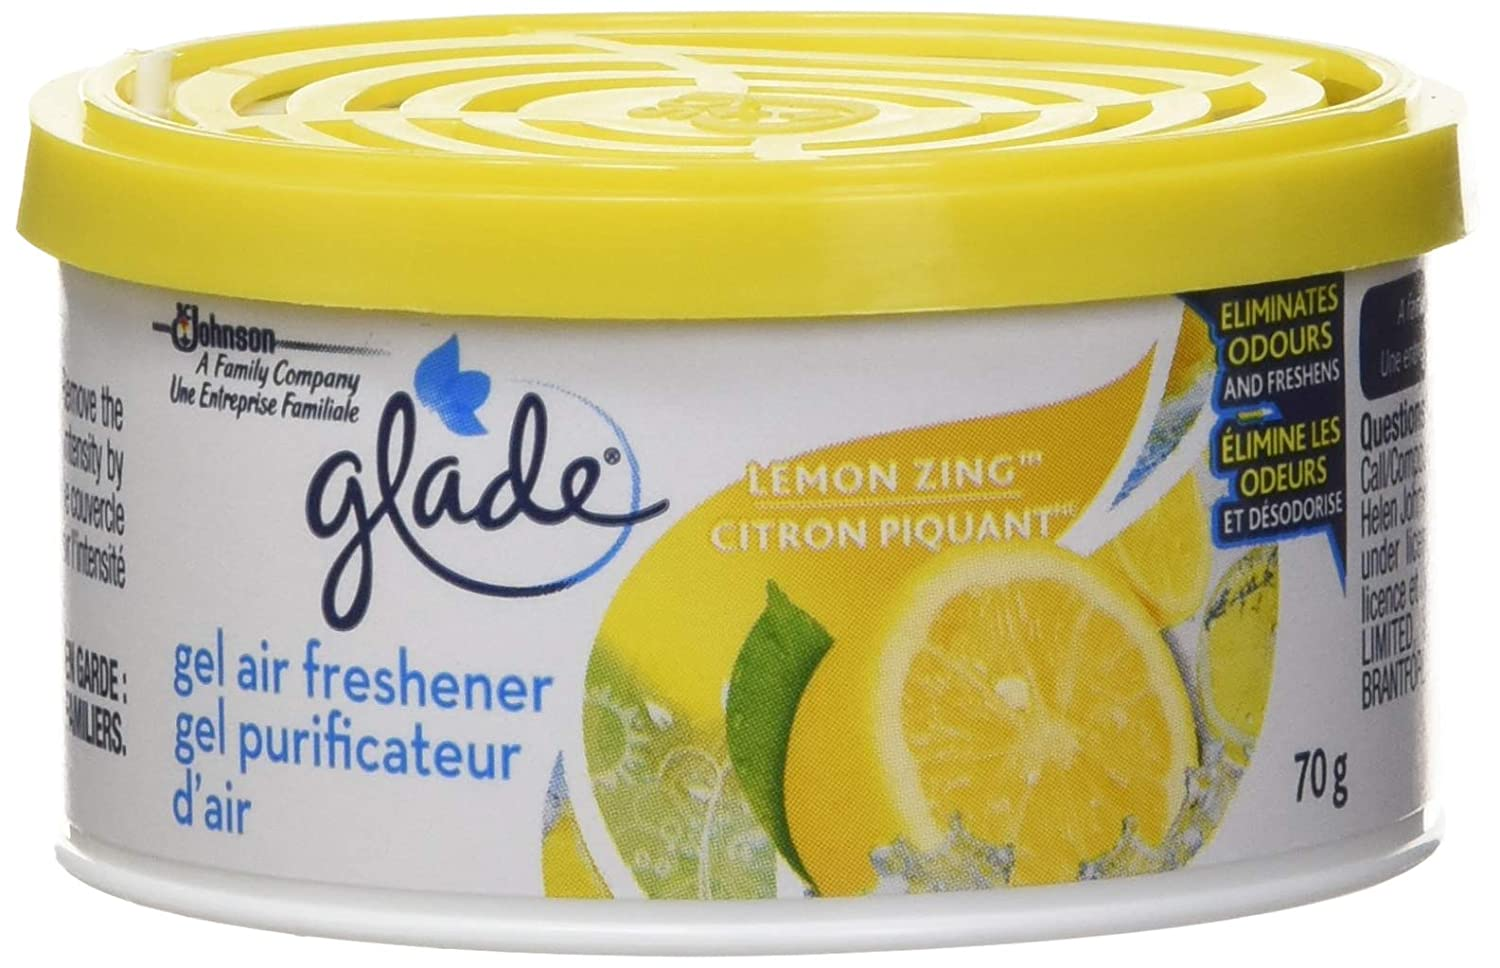 Glade Mini Gel Air Freshener, Lemon Zing - 2100 Grams (Pack of 30) SC Johnson 688269